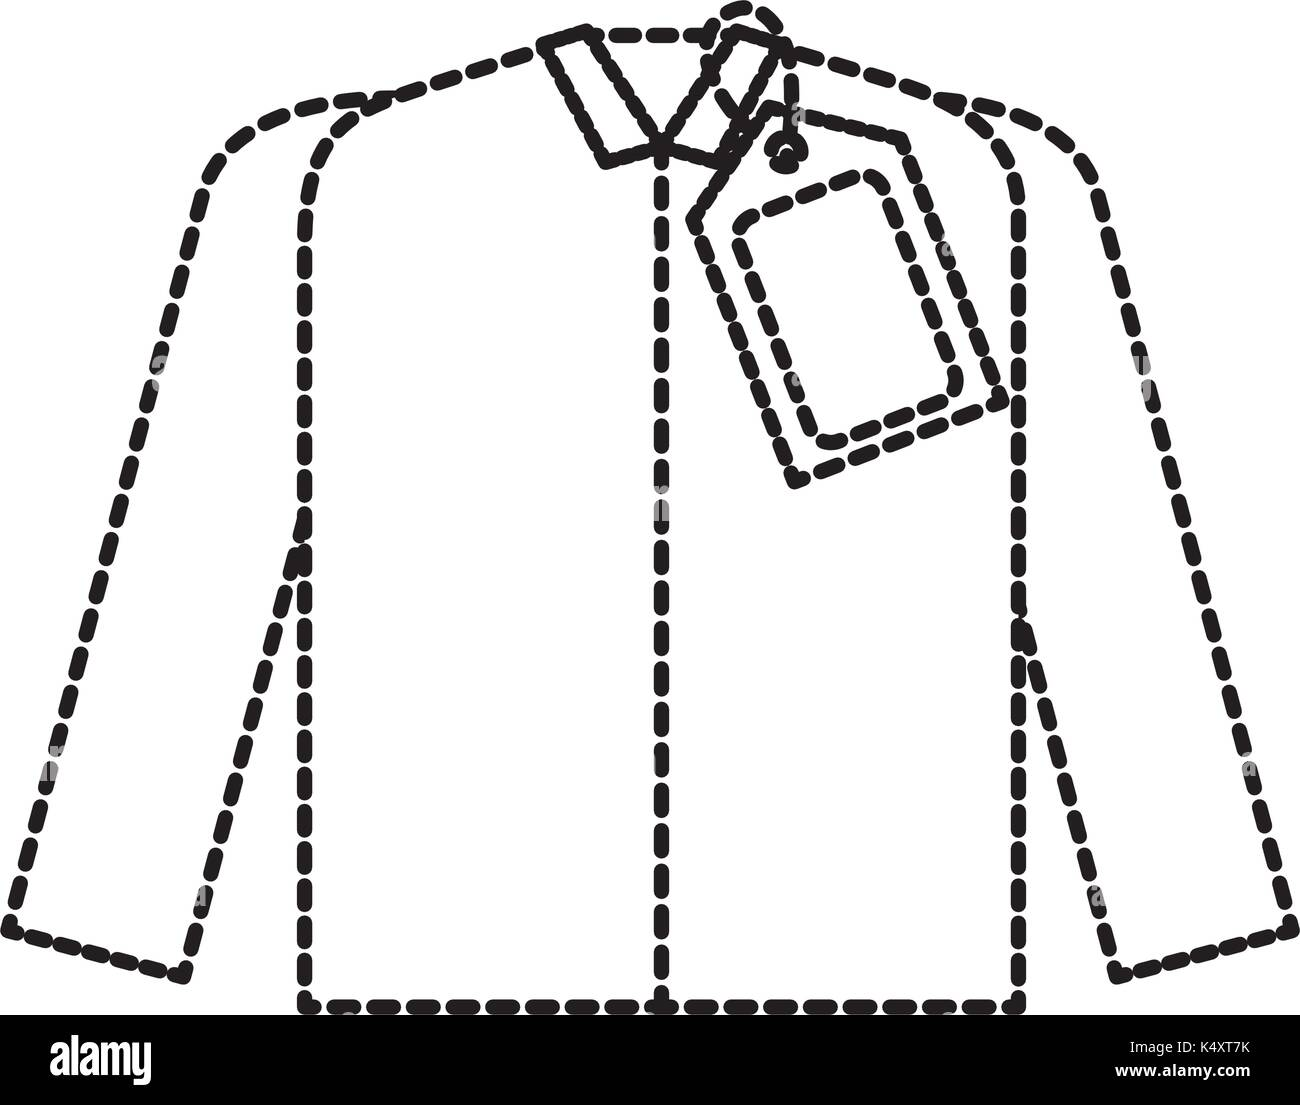 127e8b6f market clothes price tag new wear shirt Stock Vector Art ...